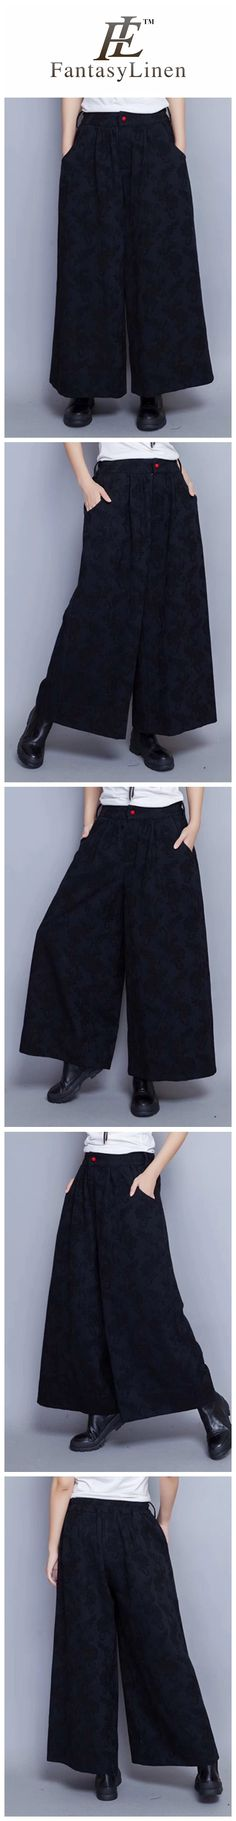 Flower Autumn Winter Wide Legs Long Pants Women Clothes R9009  R9009